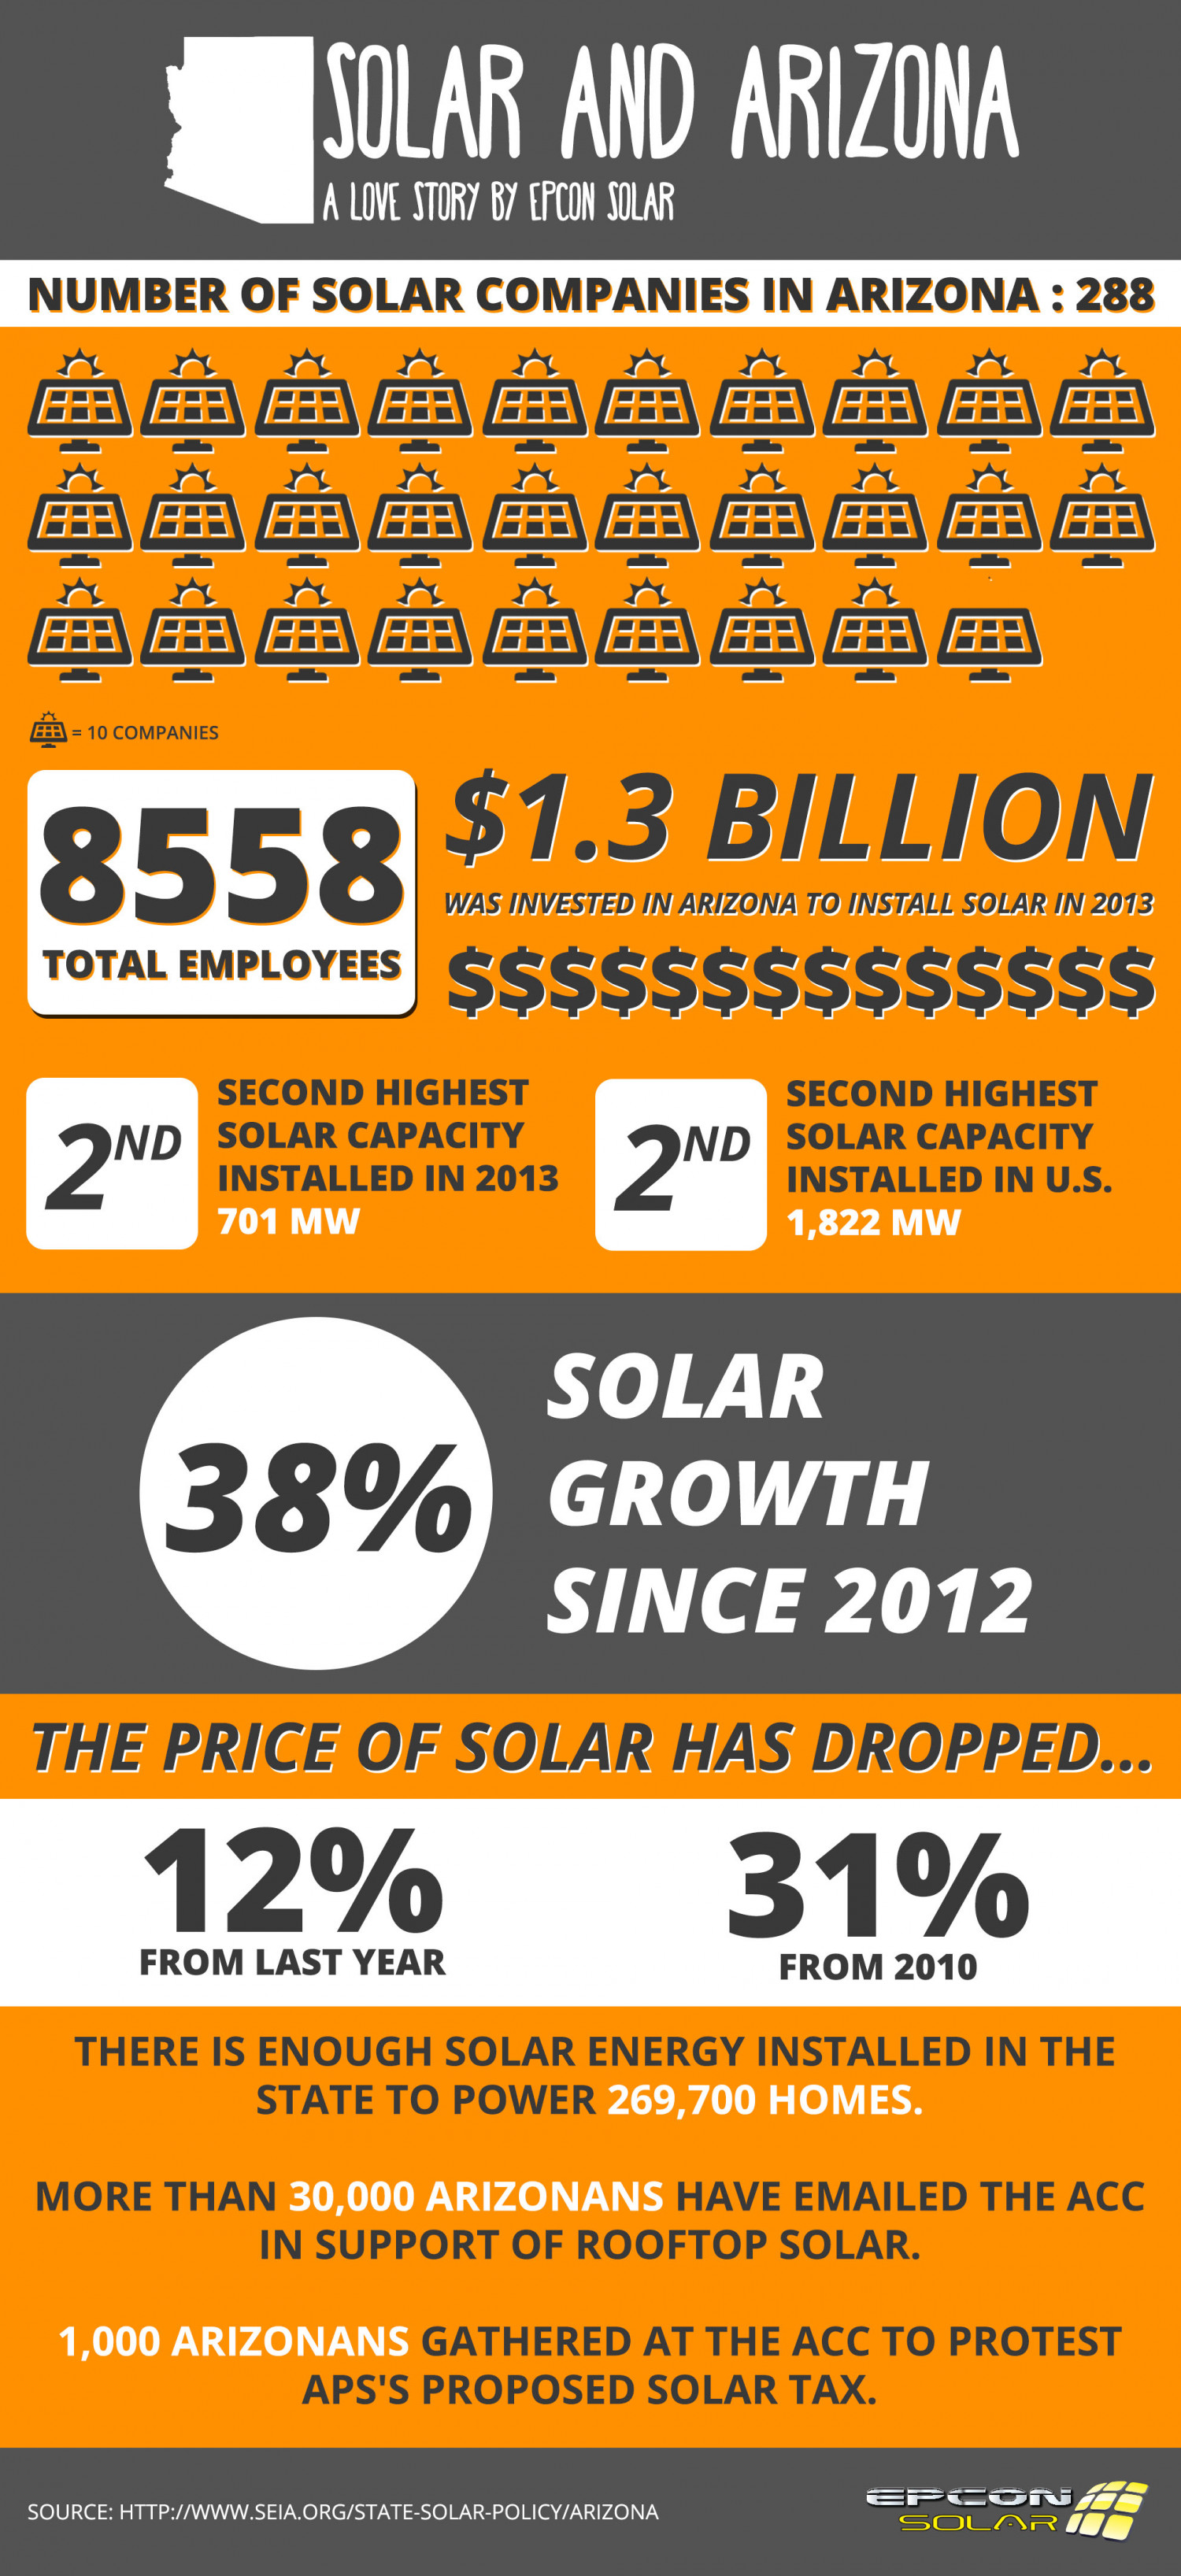 Solar and Arizona, A Love Story Infographic